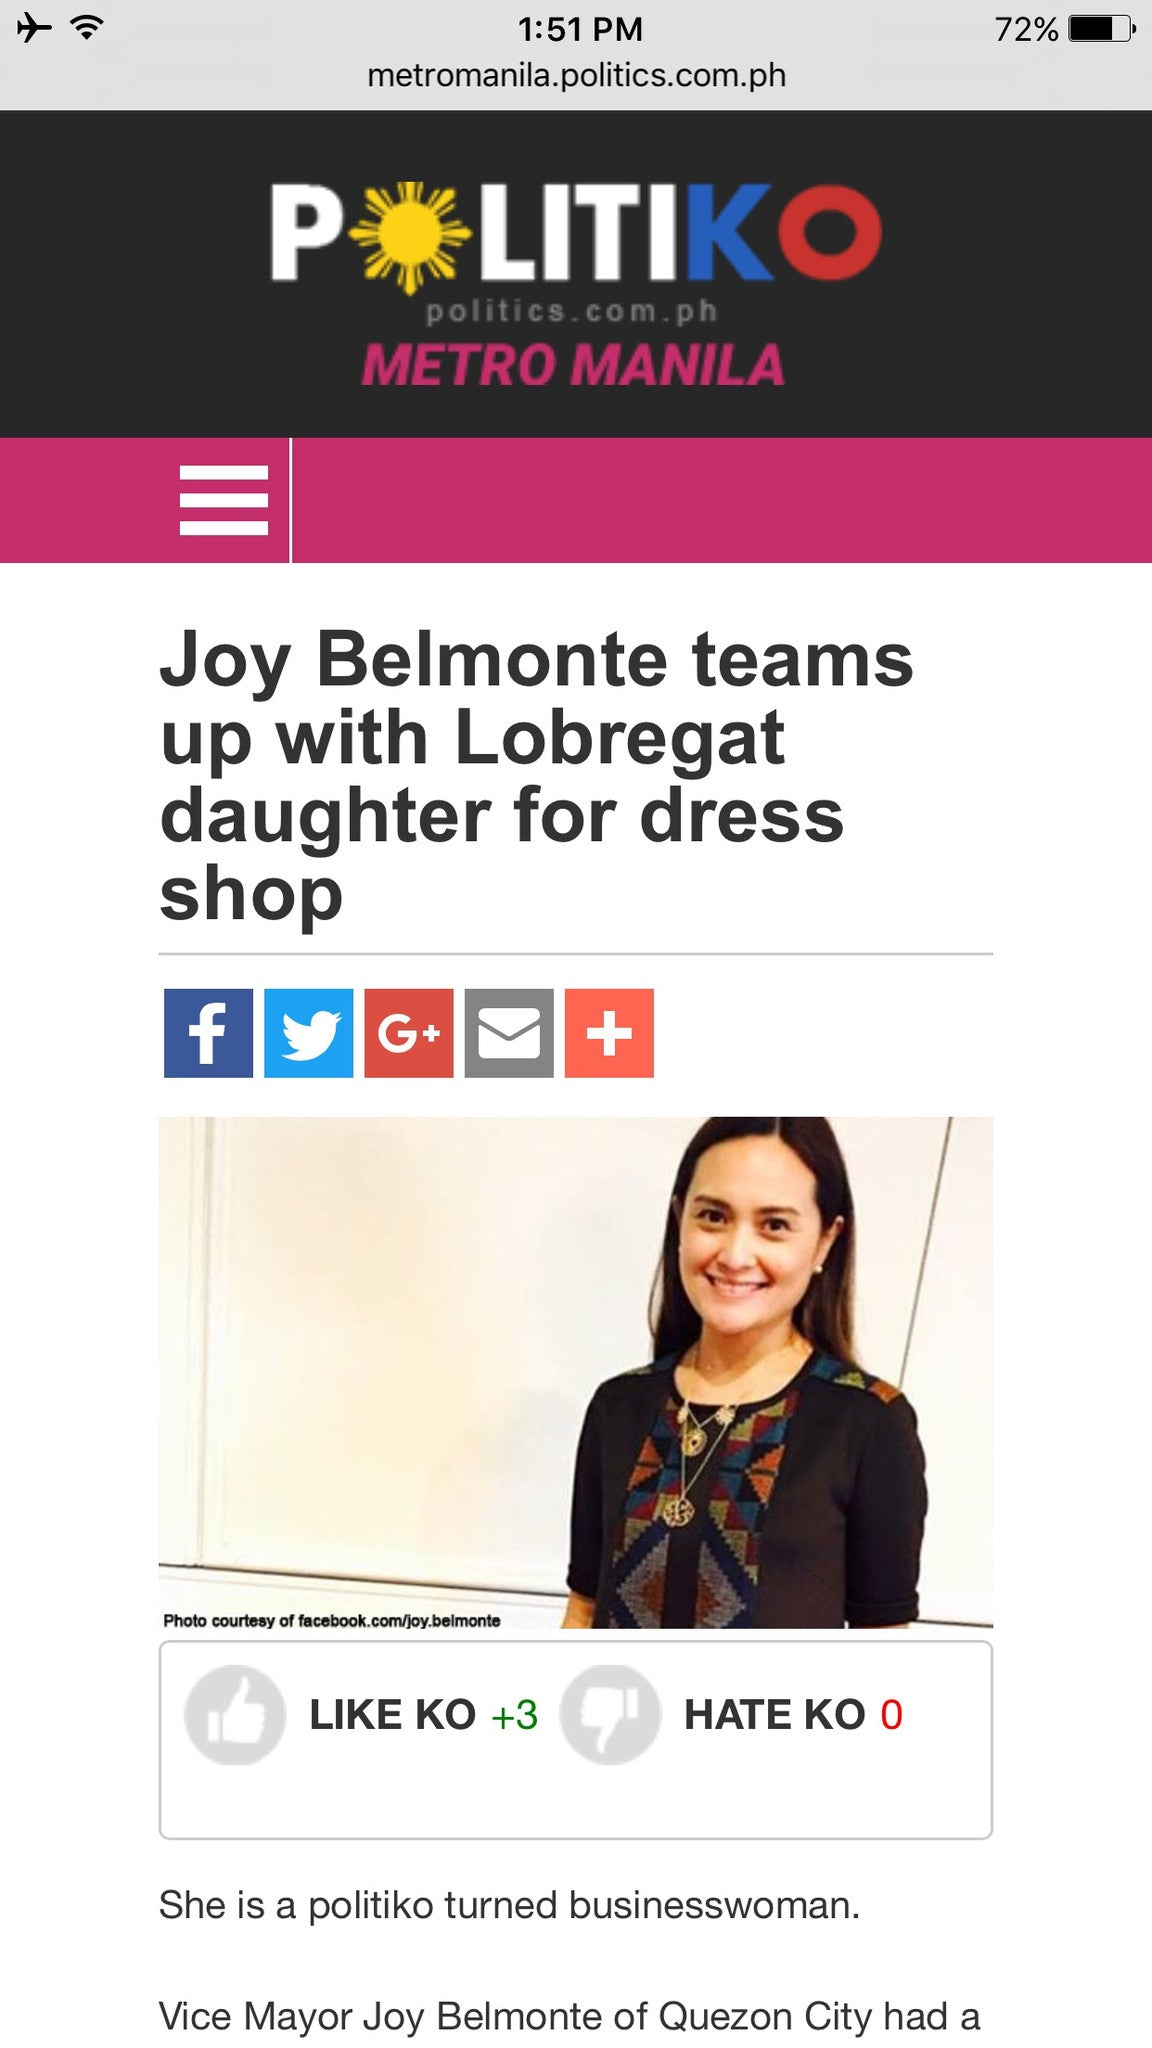 Joy Belmonte Teams Up With Lobregat Daughter For Dress Shop